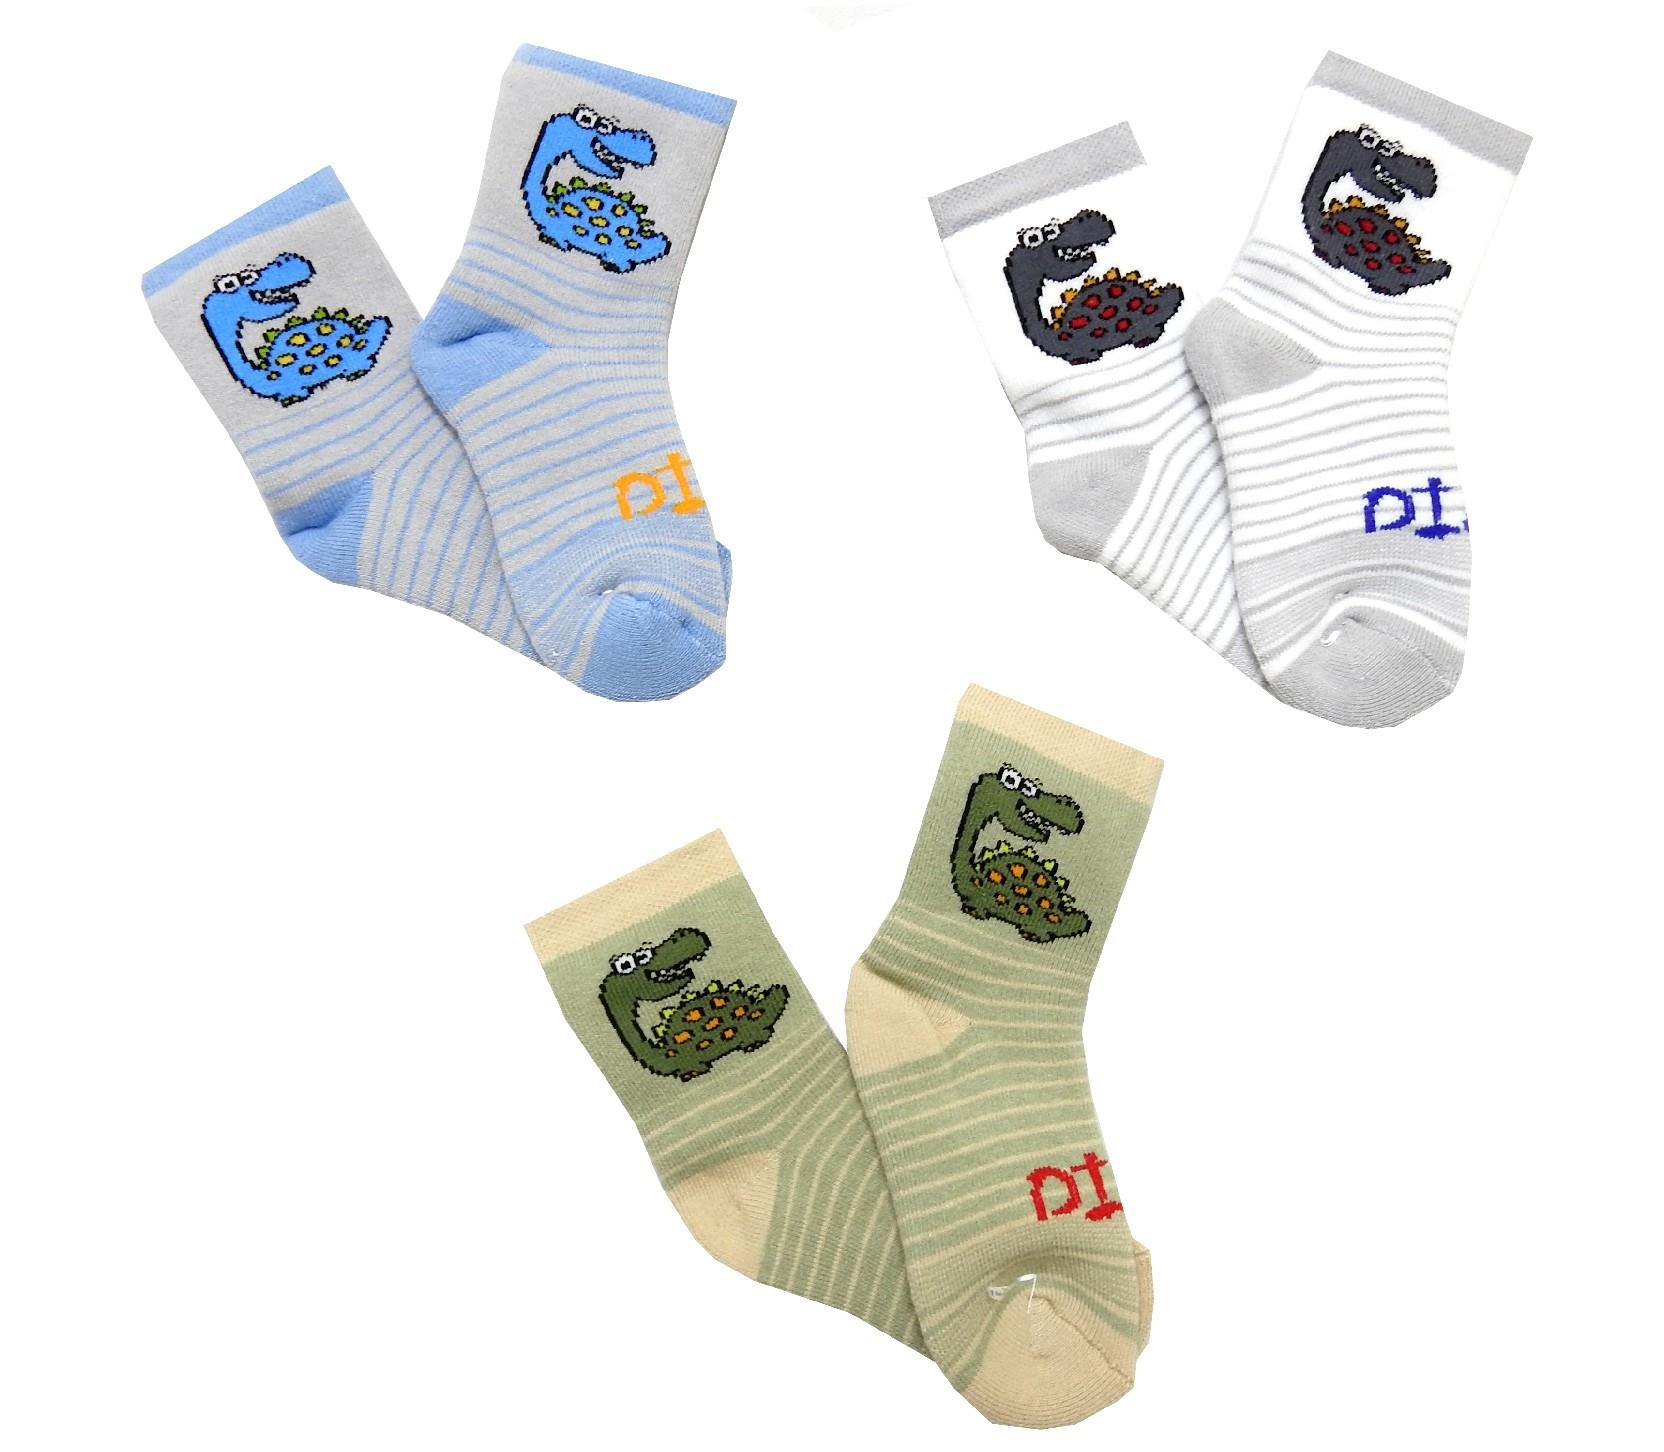 Wholesale dinosour sewed socks for baby 12 pieces in package